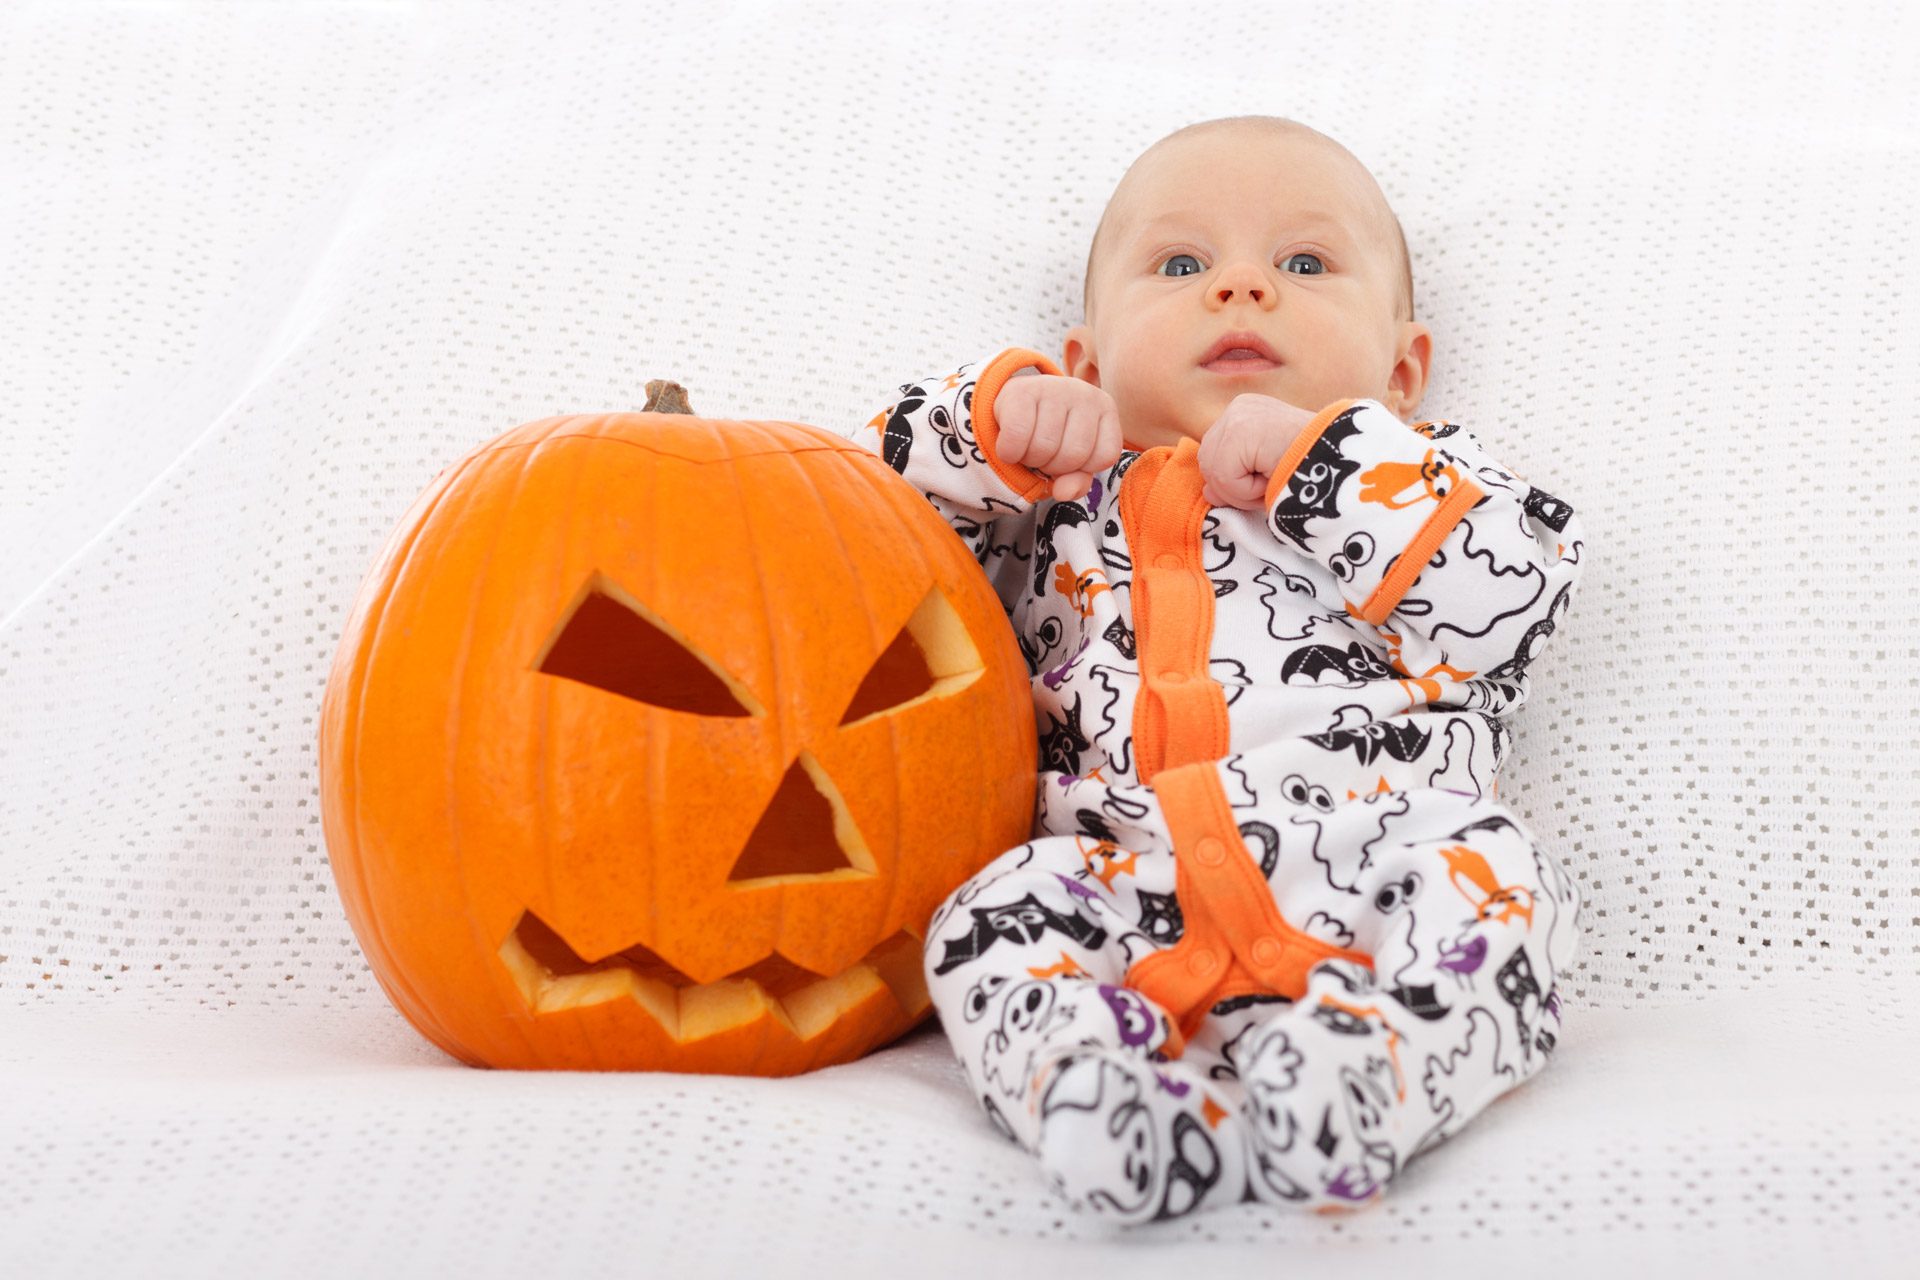 Cute Boy Babies Wallpapers Free Download Halloween Baby 1920x1280 Full Hd Wall